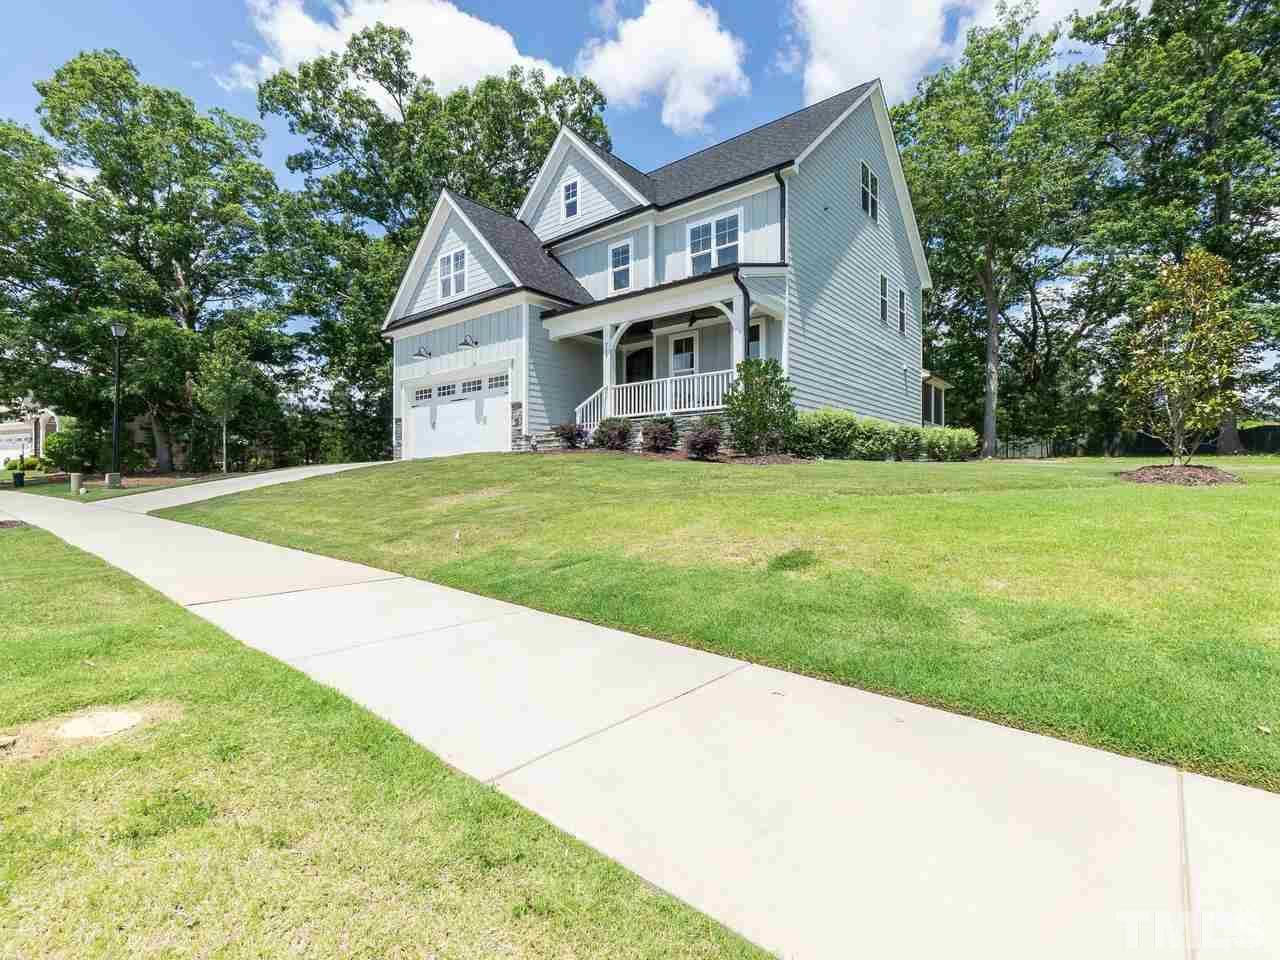 Photo of 716 Copper Beech Lane, Wake Forest, NC 27587 (MLS # 2331799)